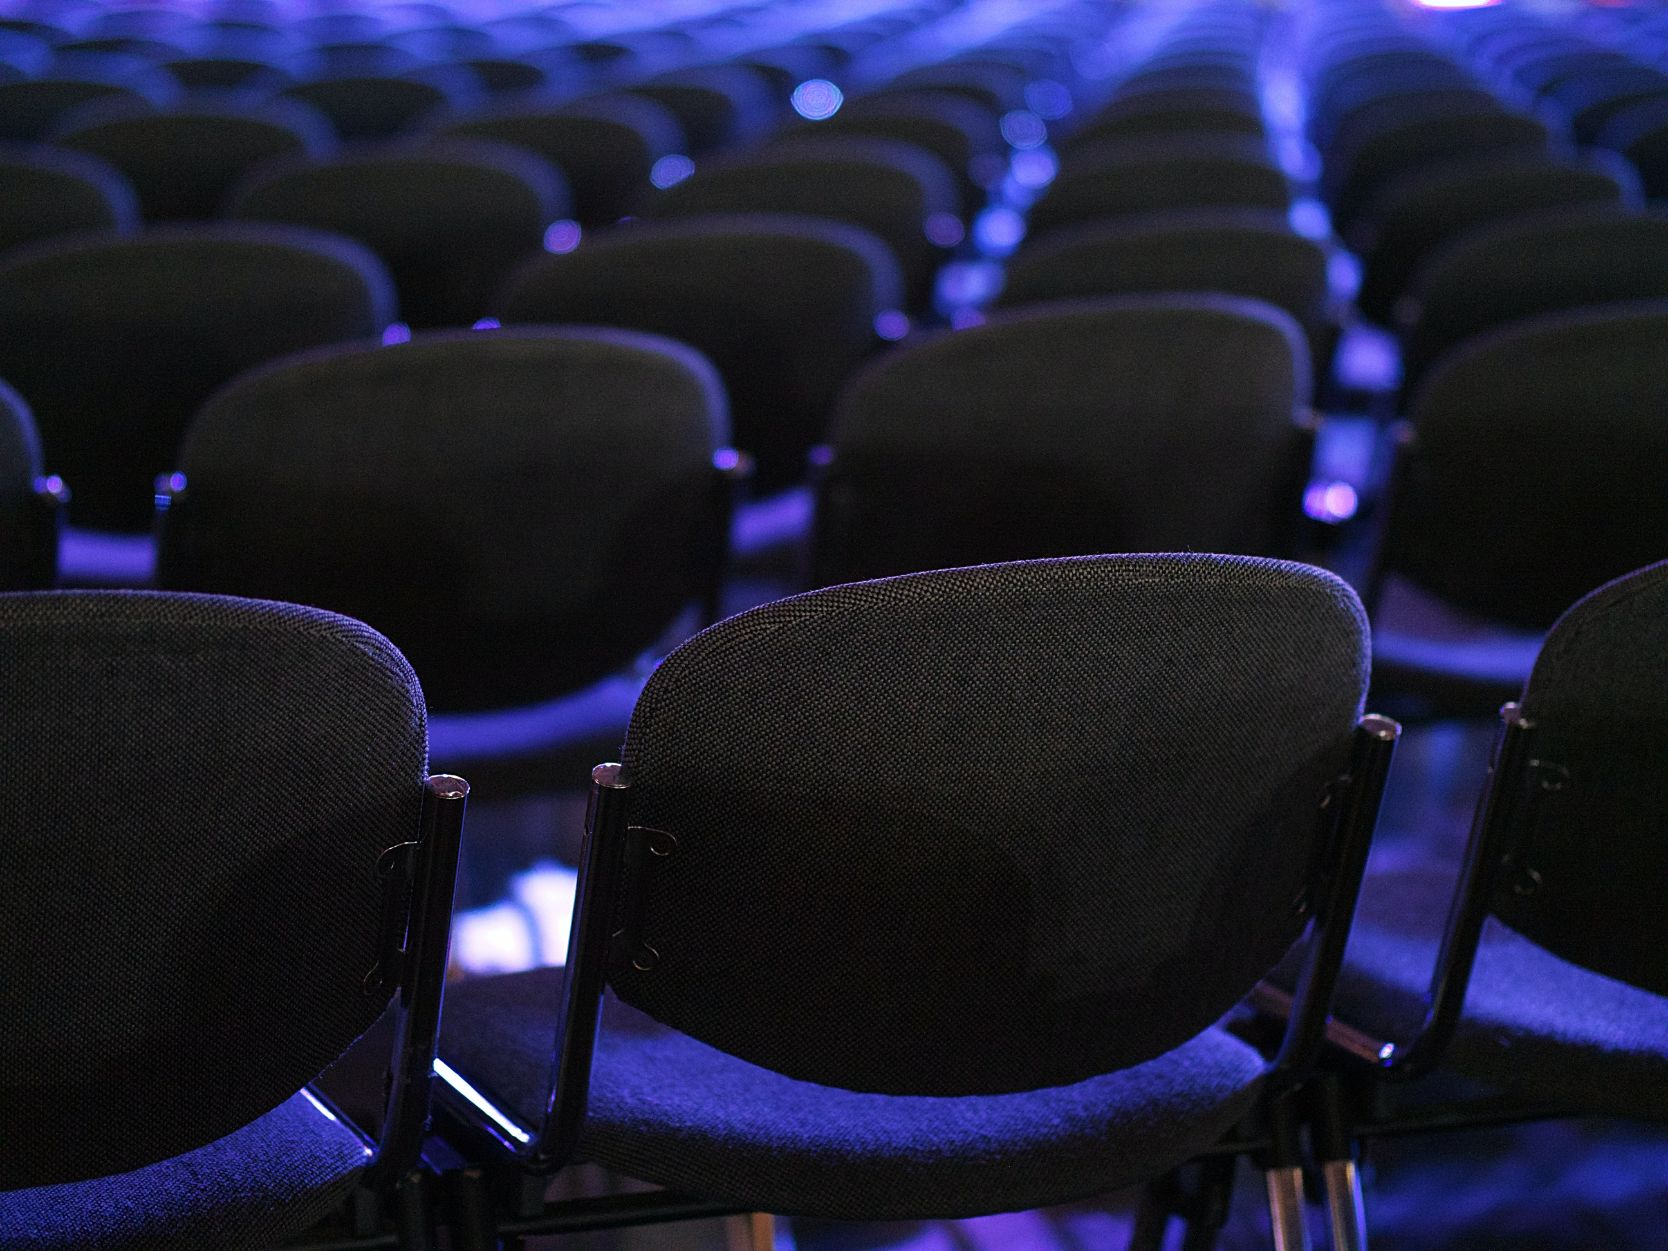 Faced with a capacity audience for their AI conference early in 2020 and wishing to extend the reach of the event far and wide, our client (a Global institution) asked us for a solution.